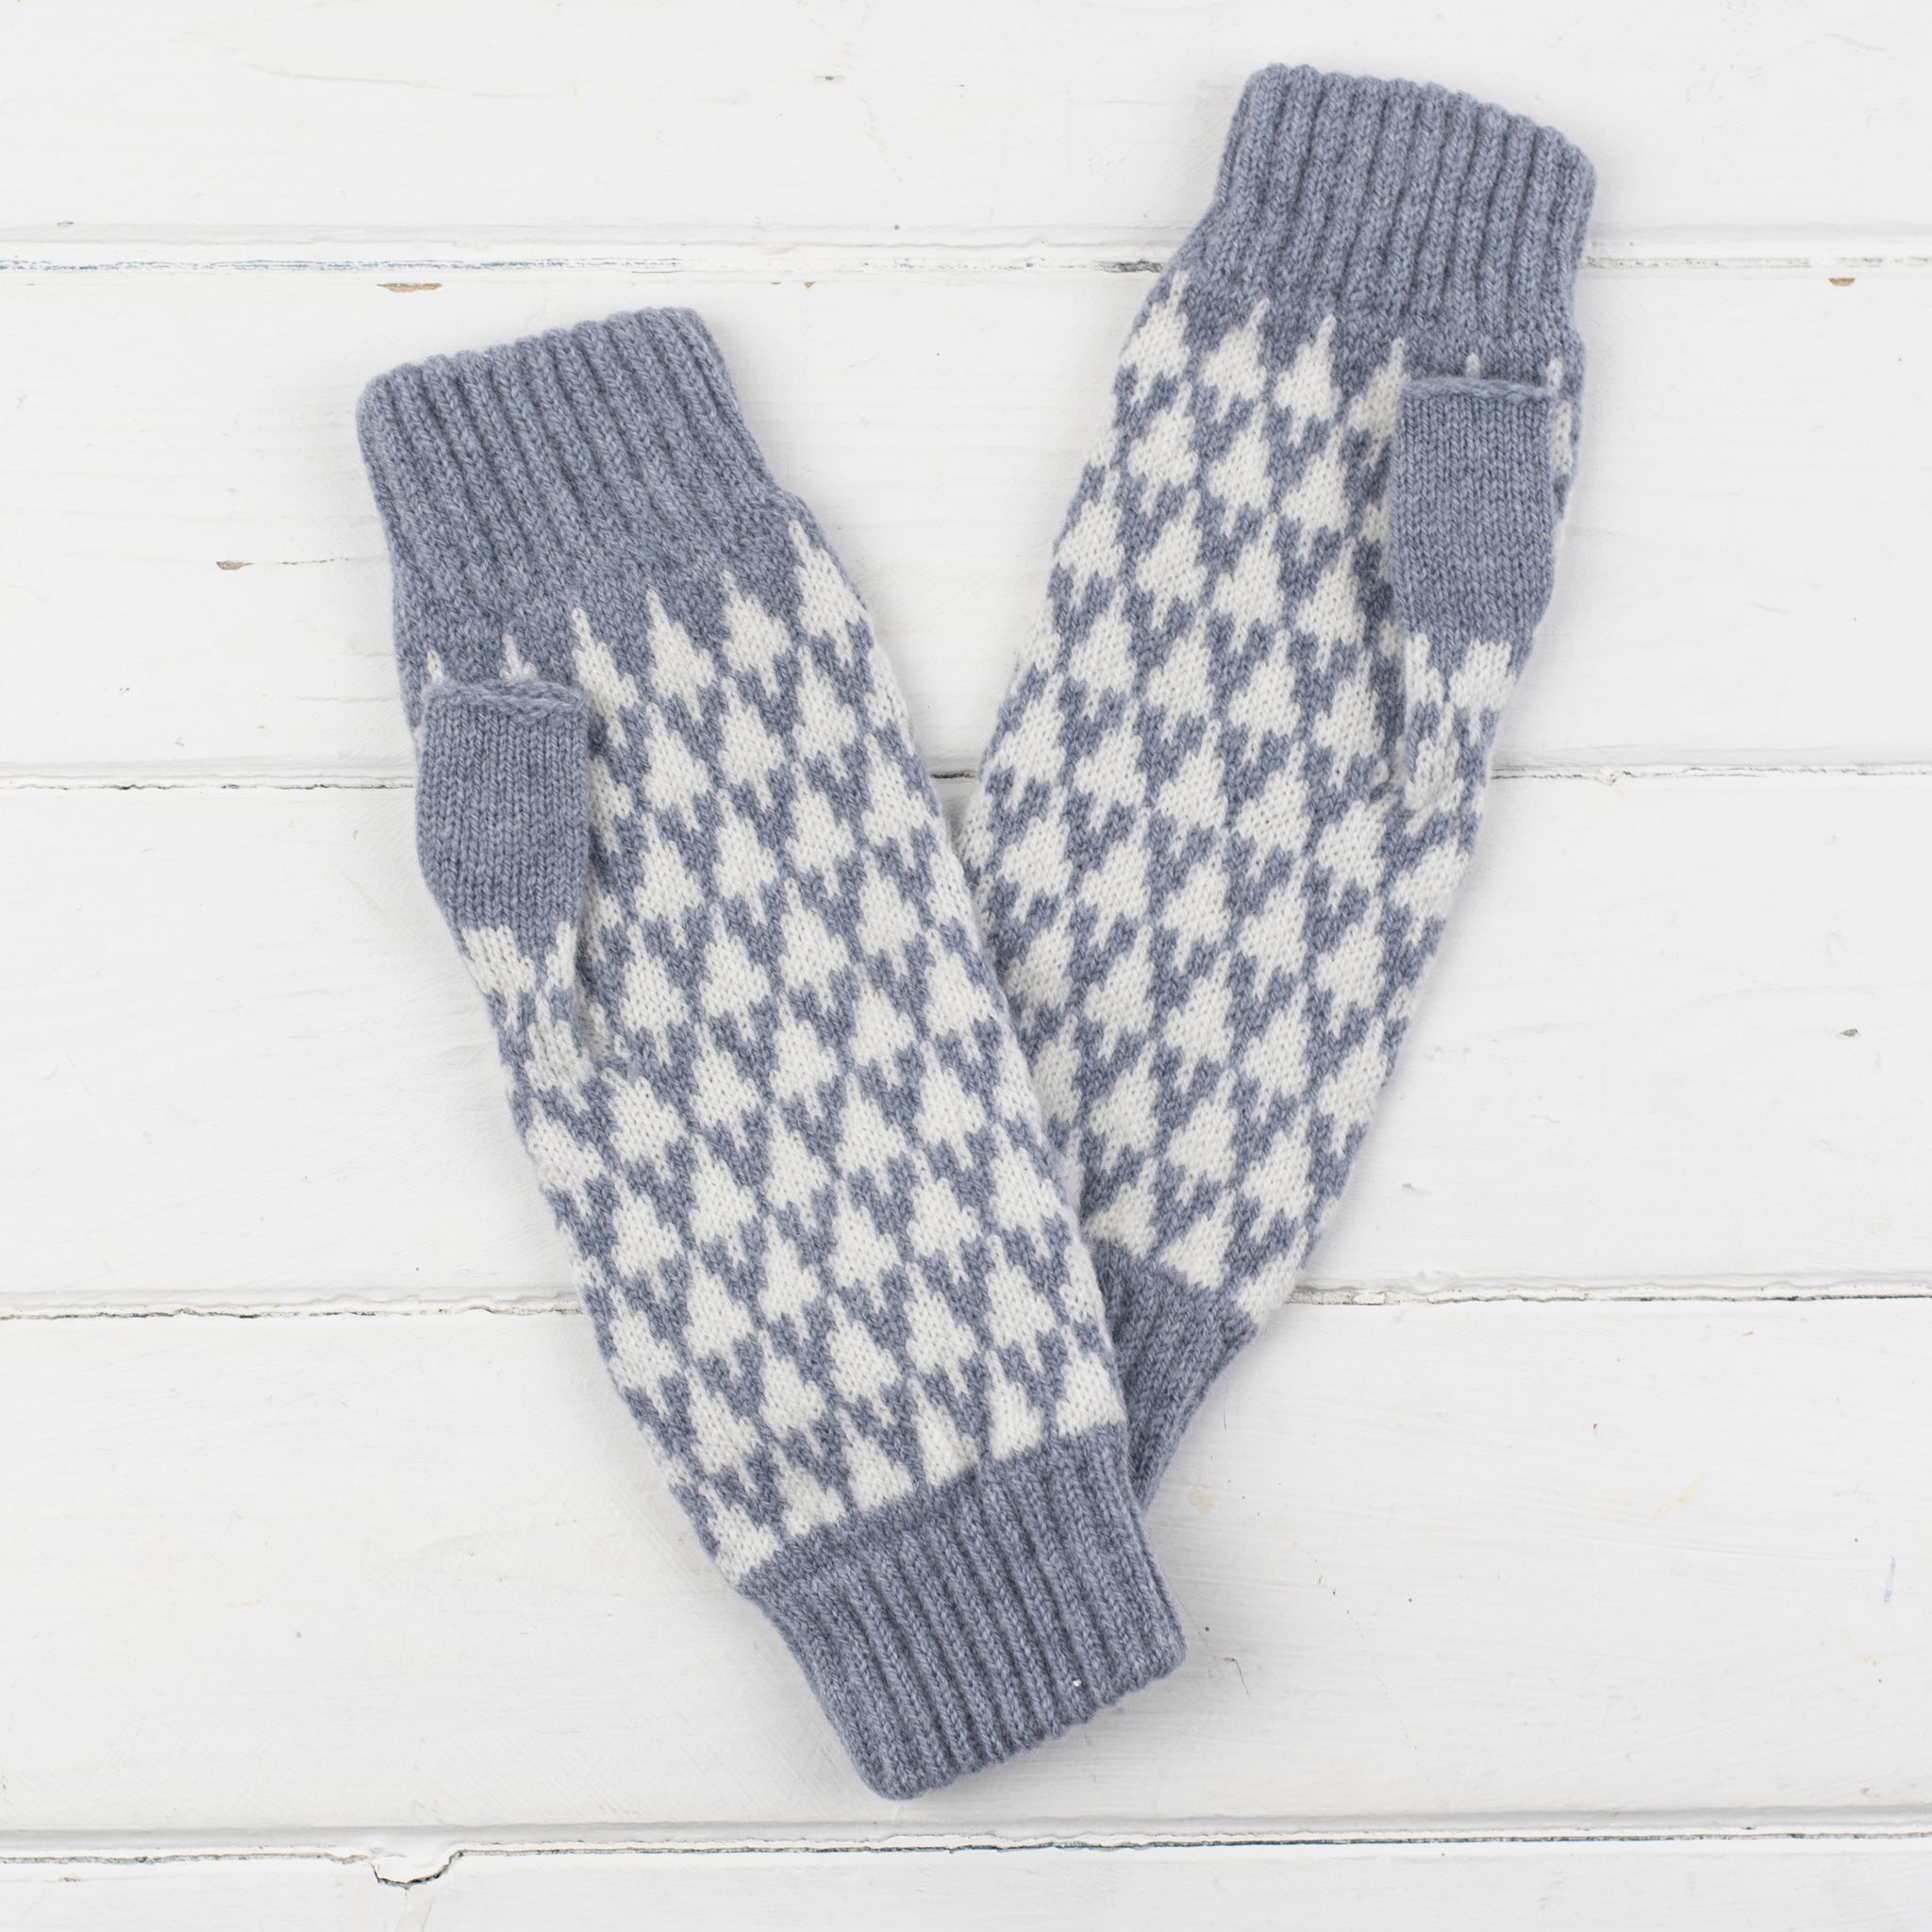 Luxury knitted lambswool accessories from Miss Knit Nat